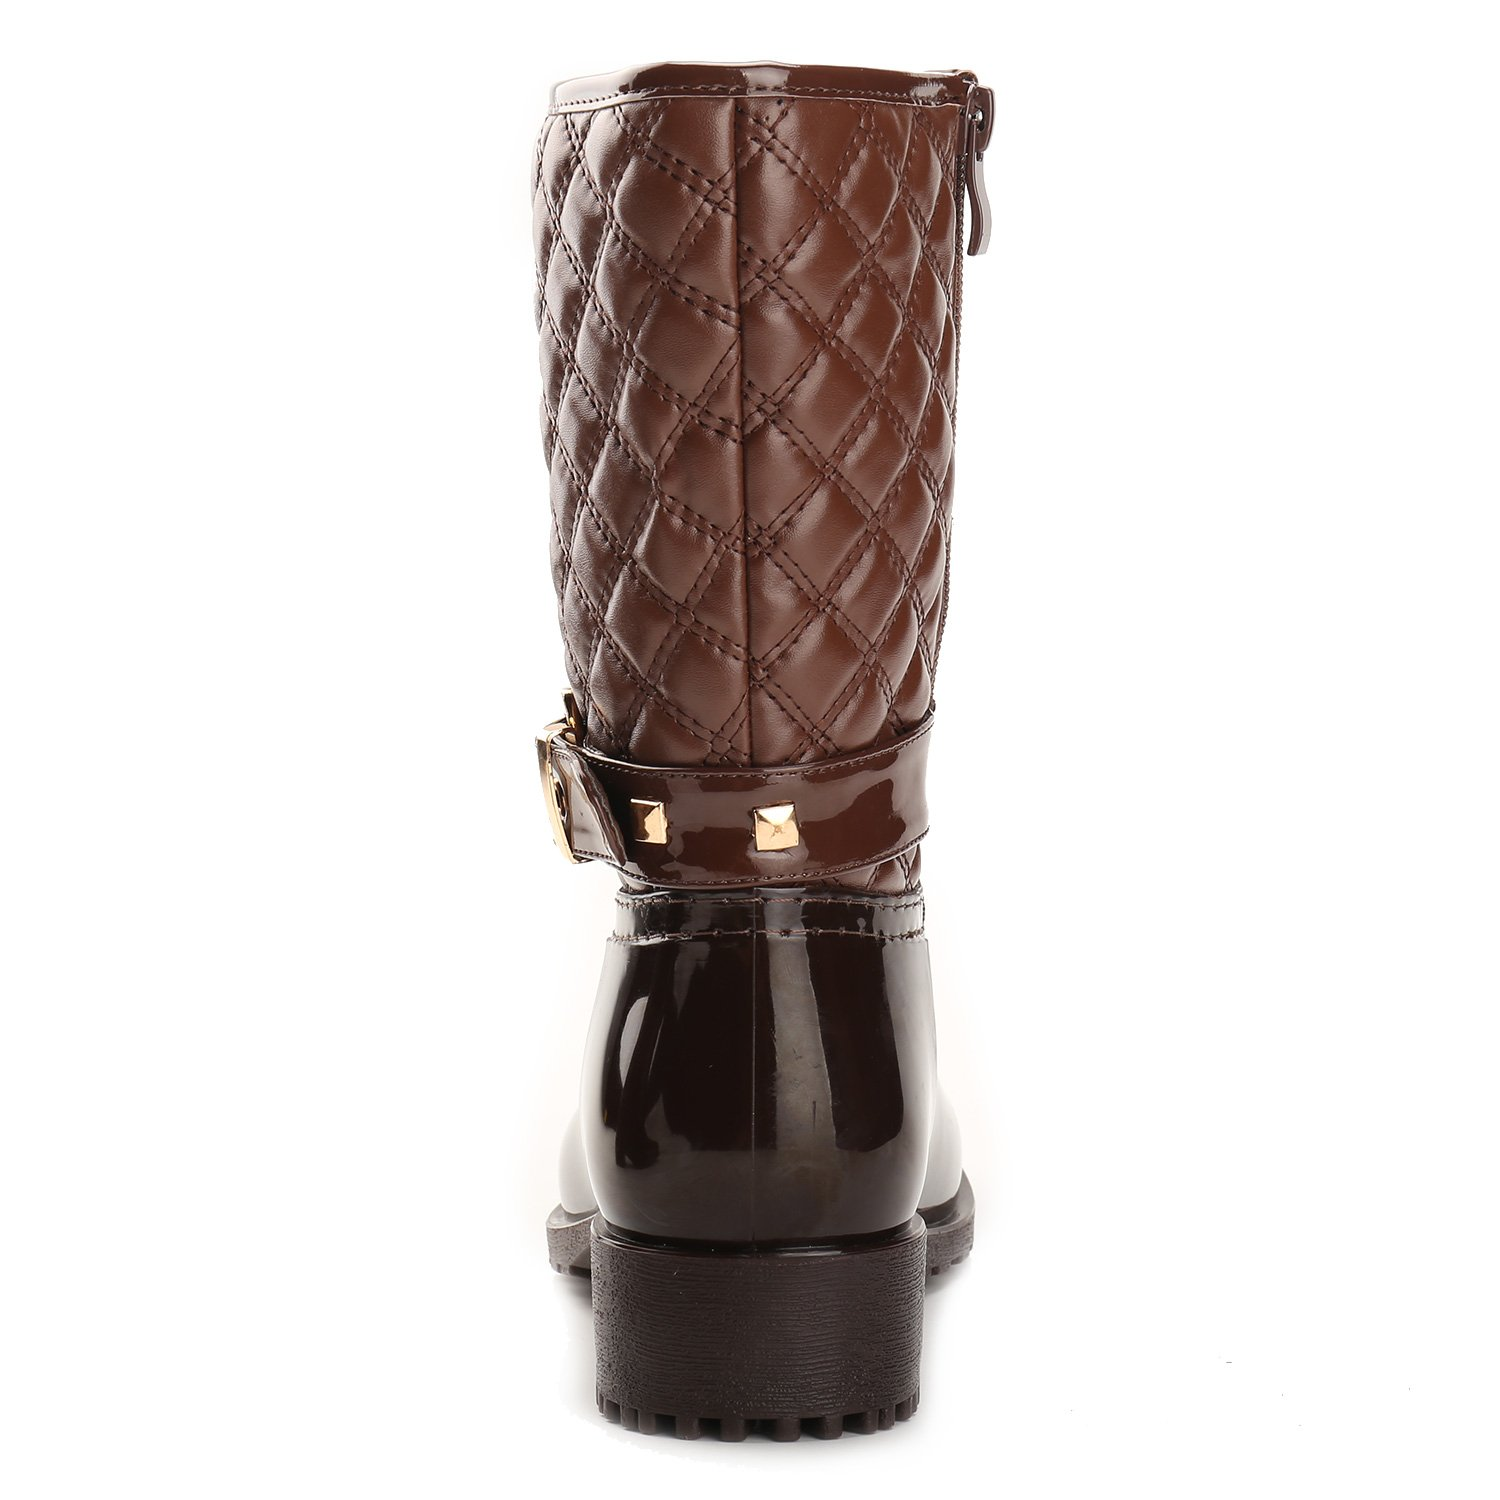 Alexis Leroy Women Checkered Diamond Pattern Studded Adjustable-Strap Warm-Keeping Rain Boots